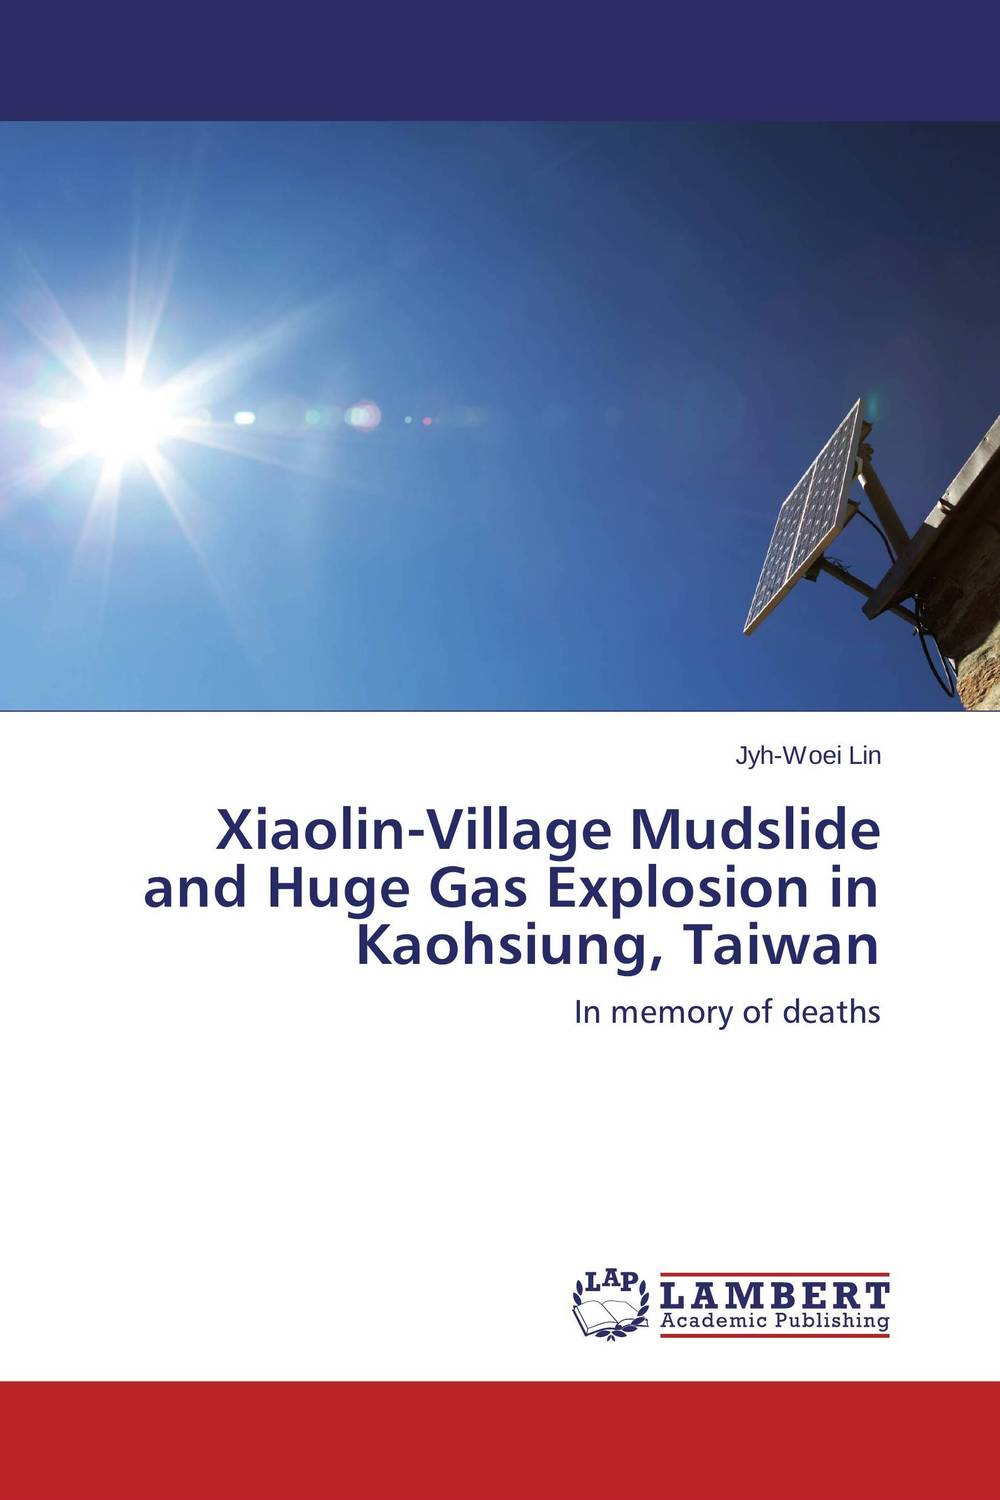 Xiaolin-Village Mudslide and Huge Gas Explosion in Kaohsiung, Taiwan паяльник bao workers in taiwan pd 372 25mm